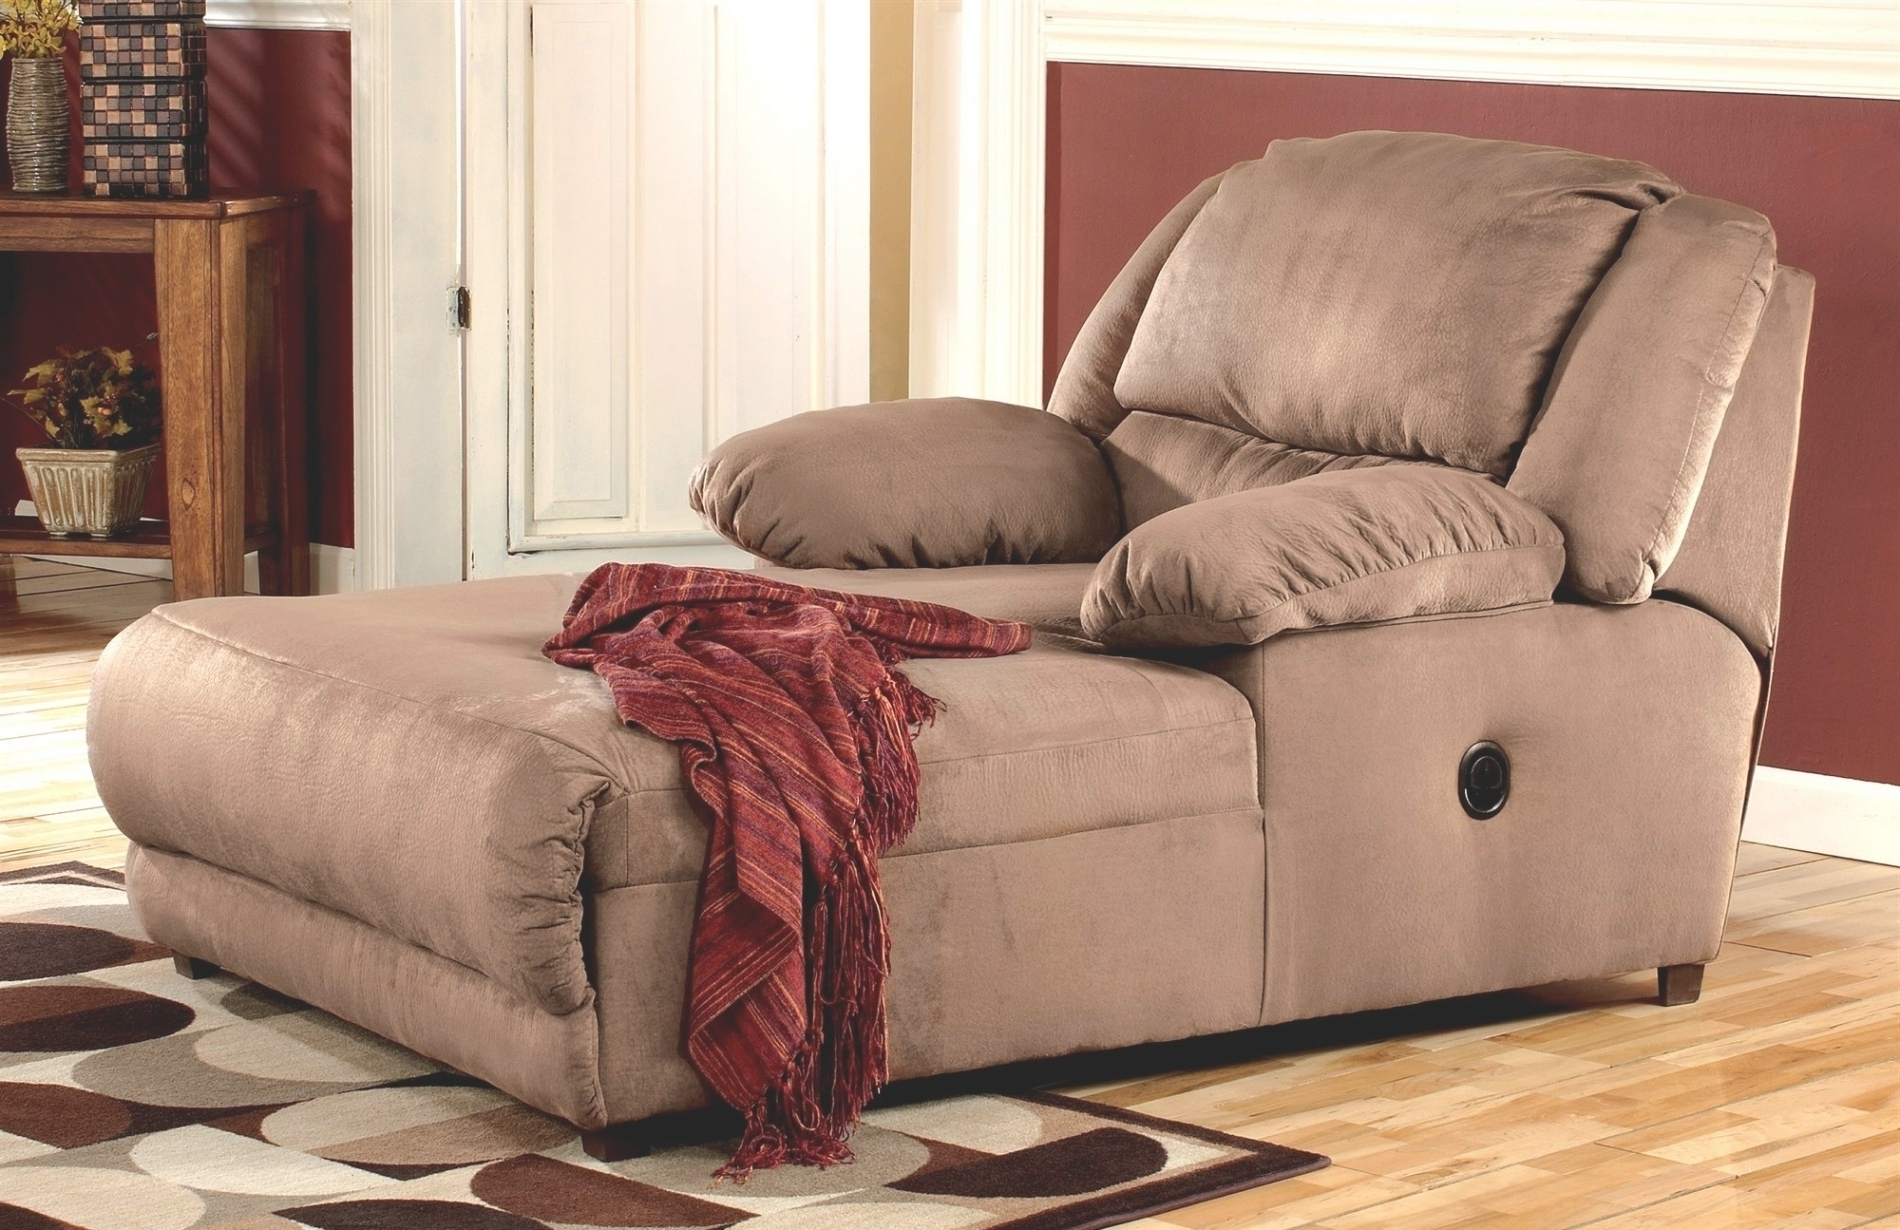 Allthingschula Throughout Popular Oversized Chaise Chairs (View 5 of 15)